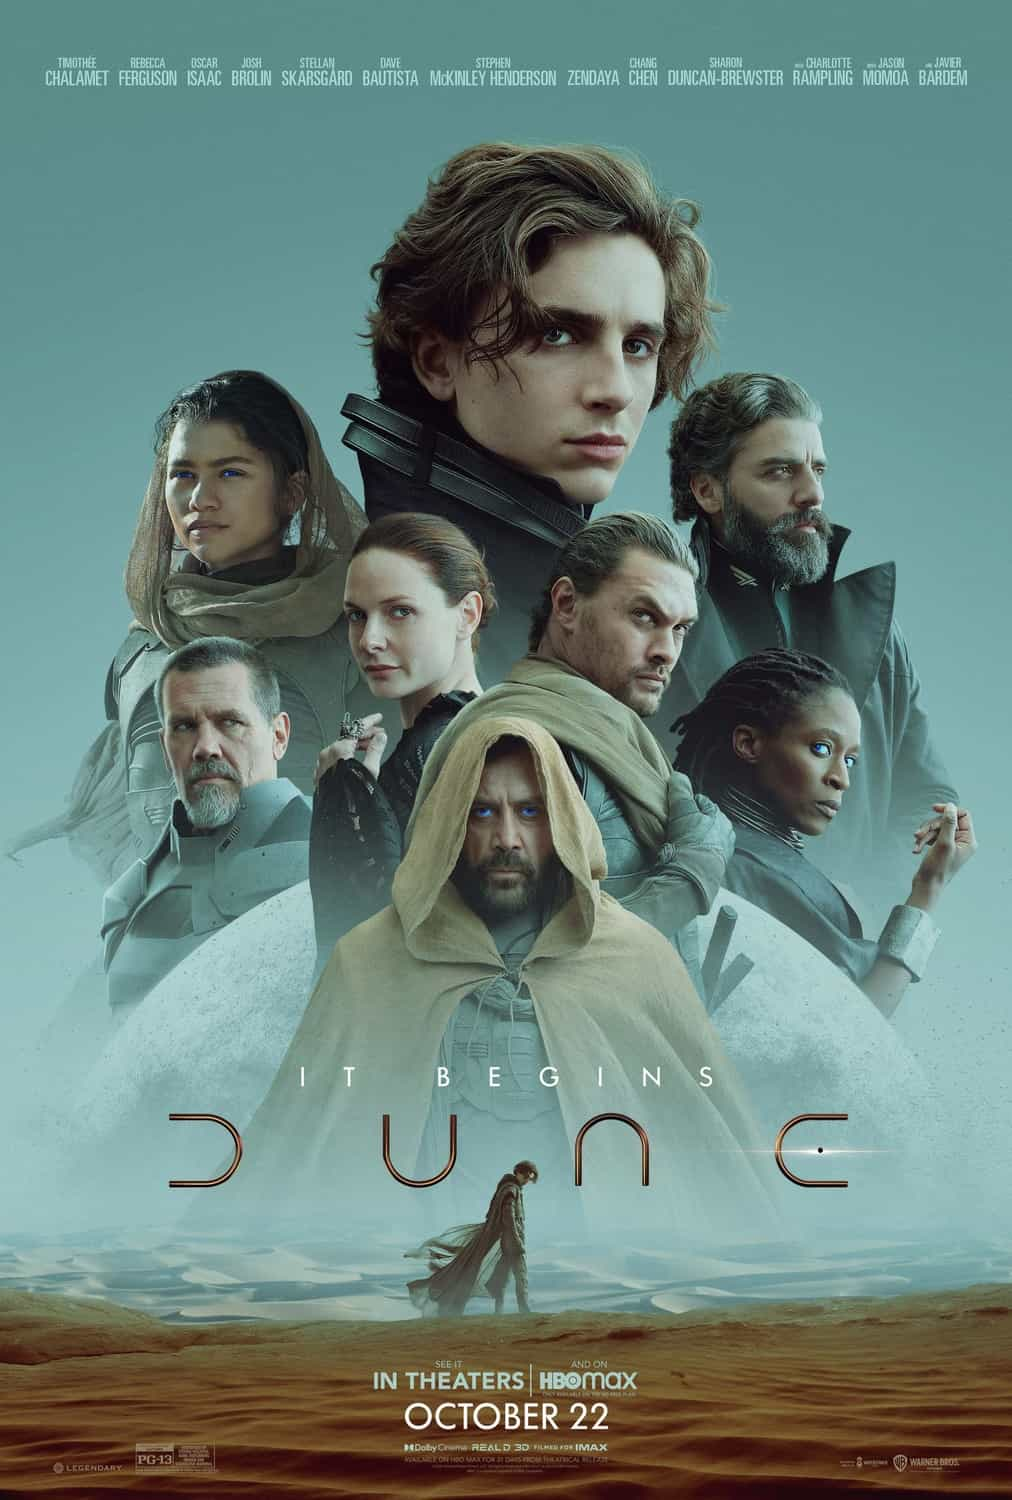 First trailer for Denis Villeneuve version of Dune - released 18th December in the UK and US